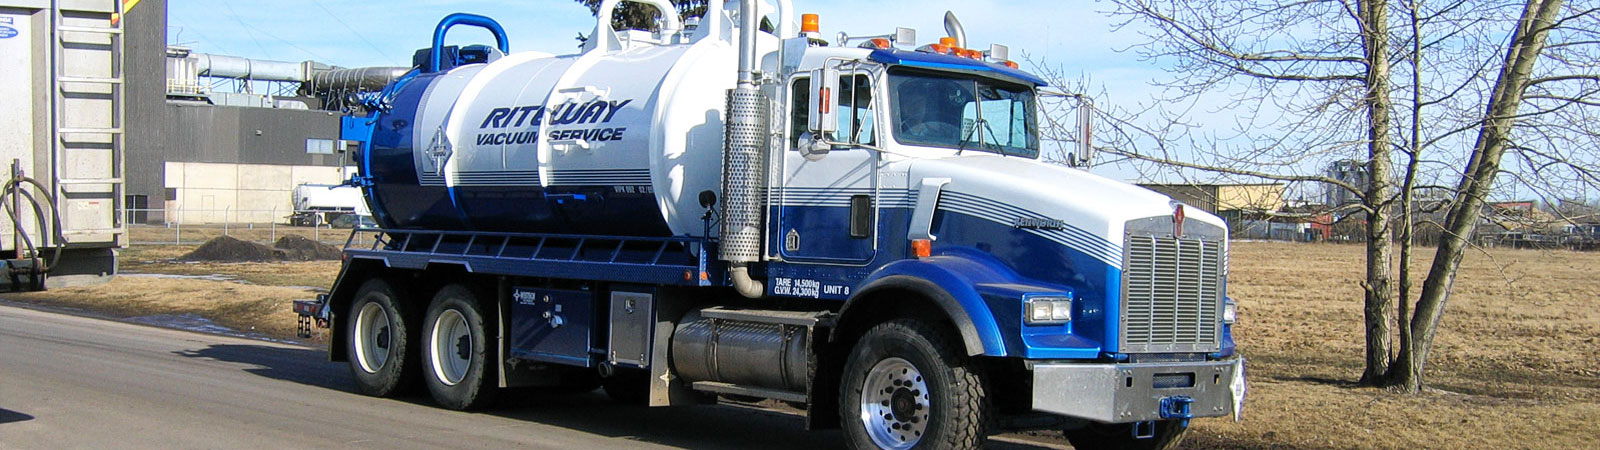 tandem vac truck for sewage hauling in Edmonton